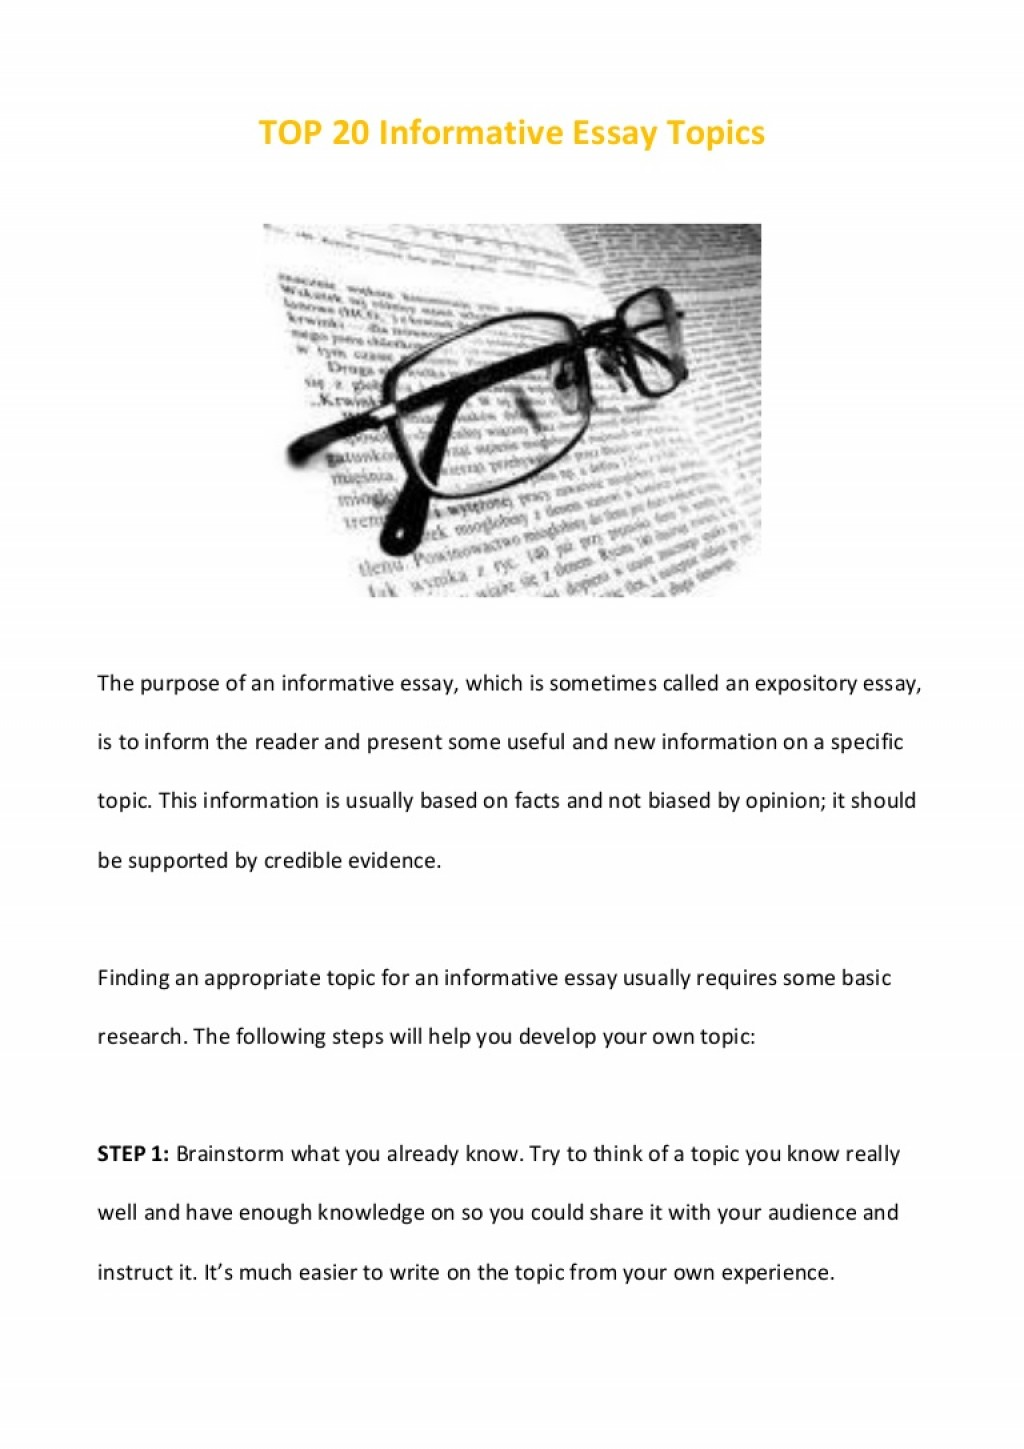 011 Essay Example Top20informativeessaytopics Phpapp02 Thumbnail Informative Remarkable Topics For 4th Grade Expository High School 6th Graders Large